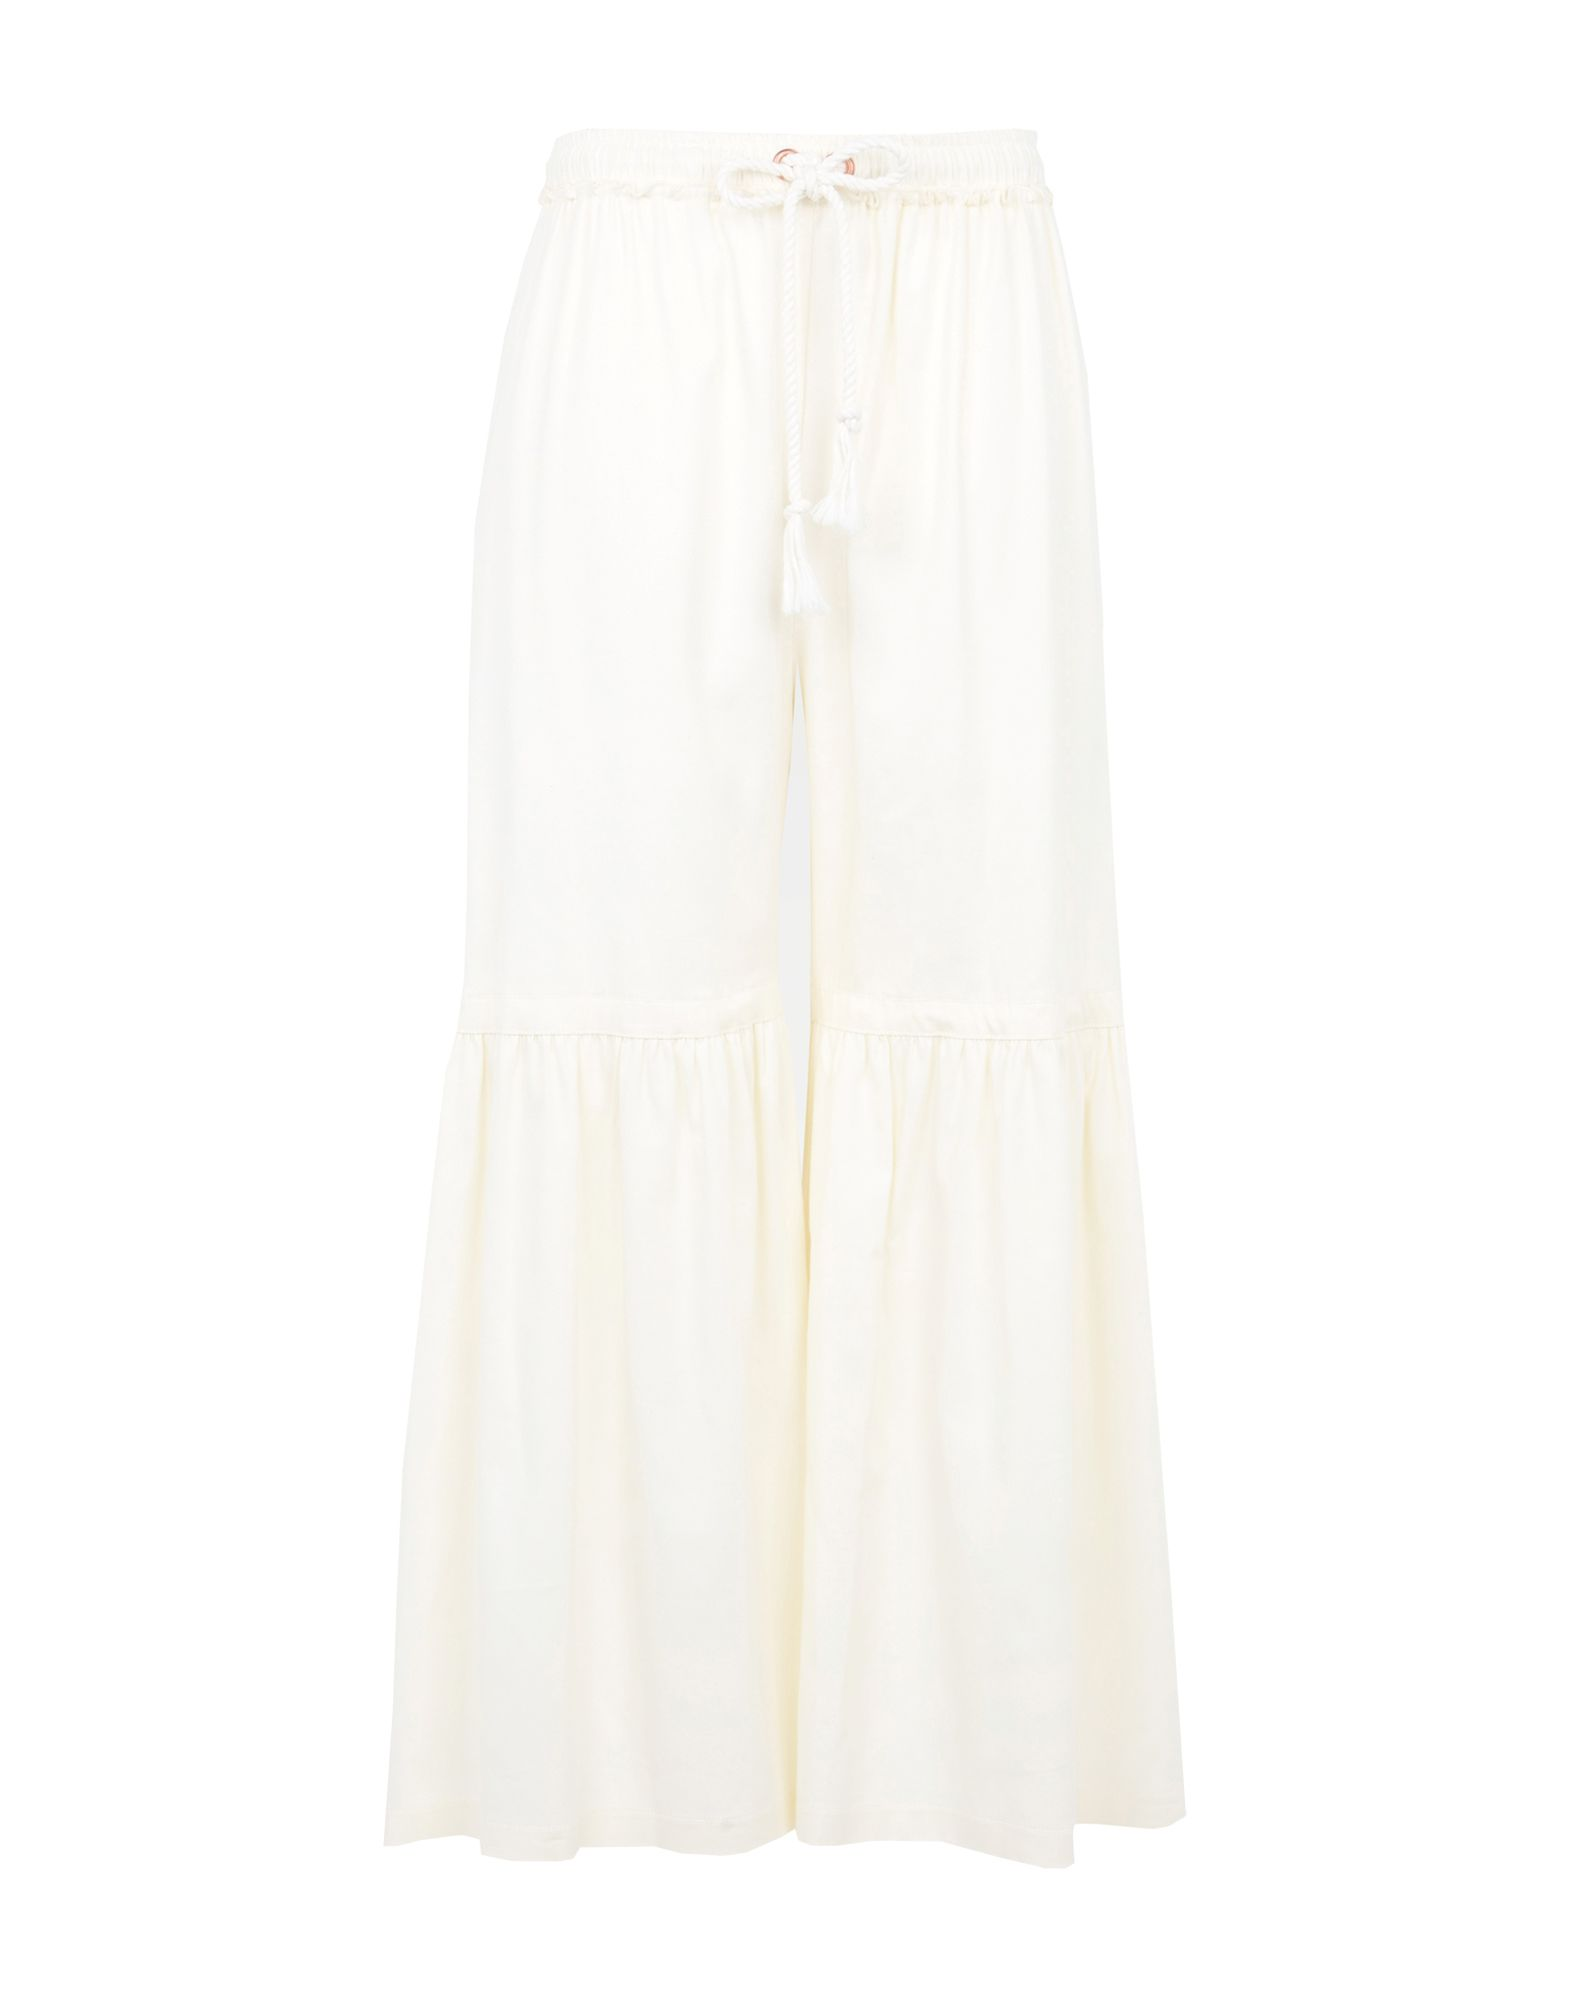 SEE BY CHLOÉ | SEE BY CHLOÉ Casual pants 13123320 | Goxip